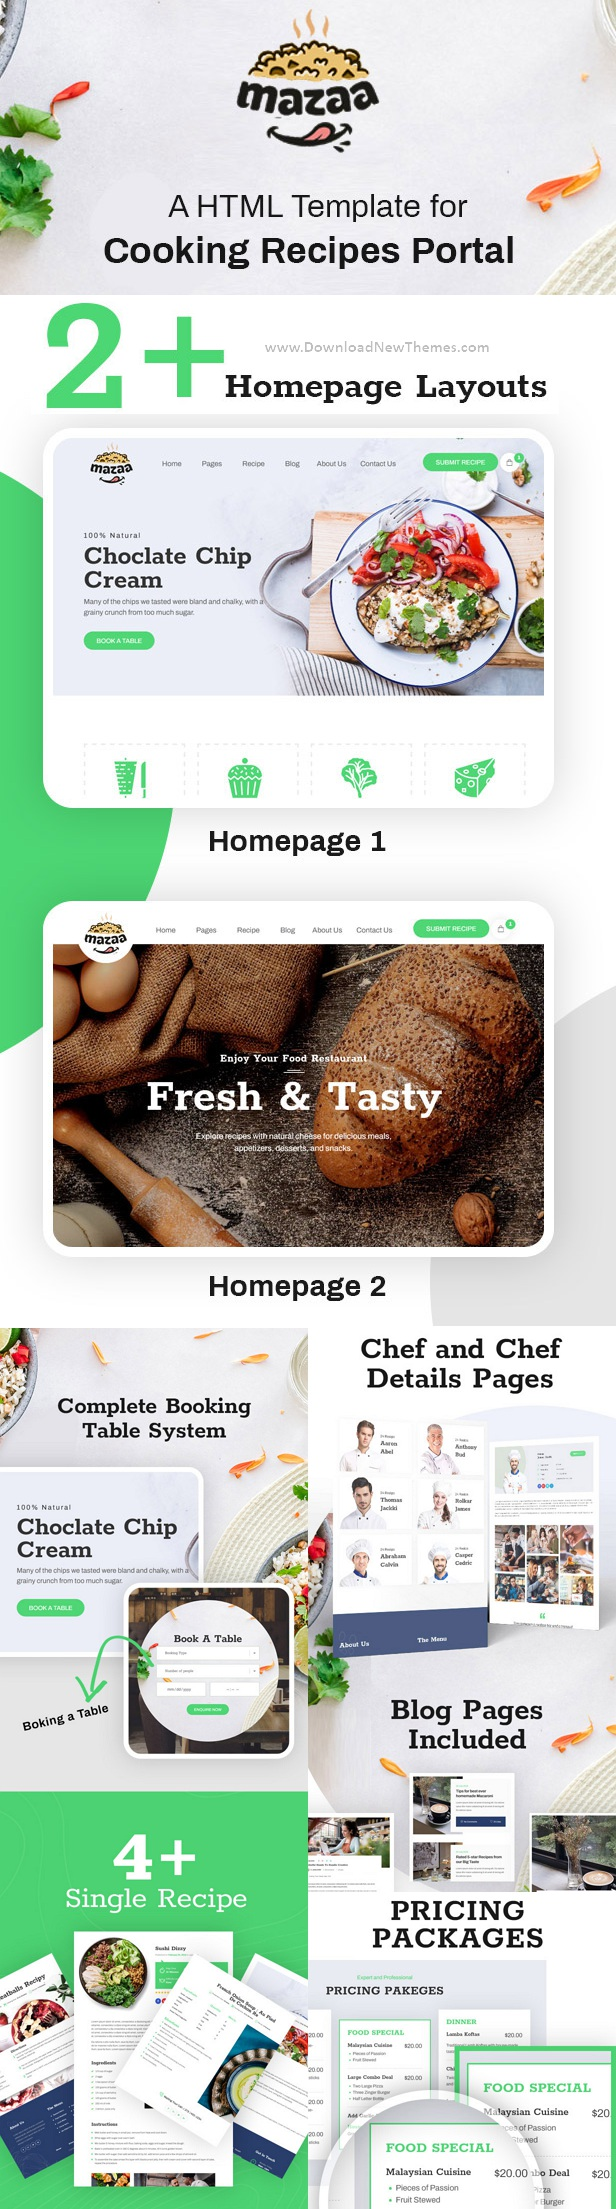 Responsive Restaurant or Eatery Template